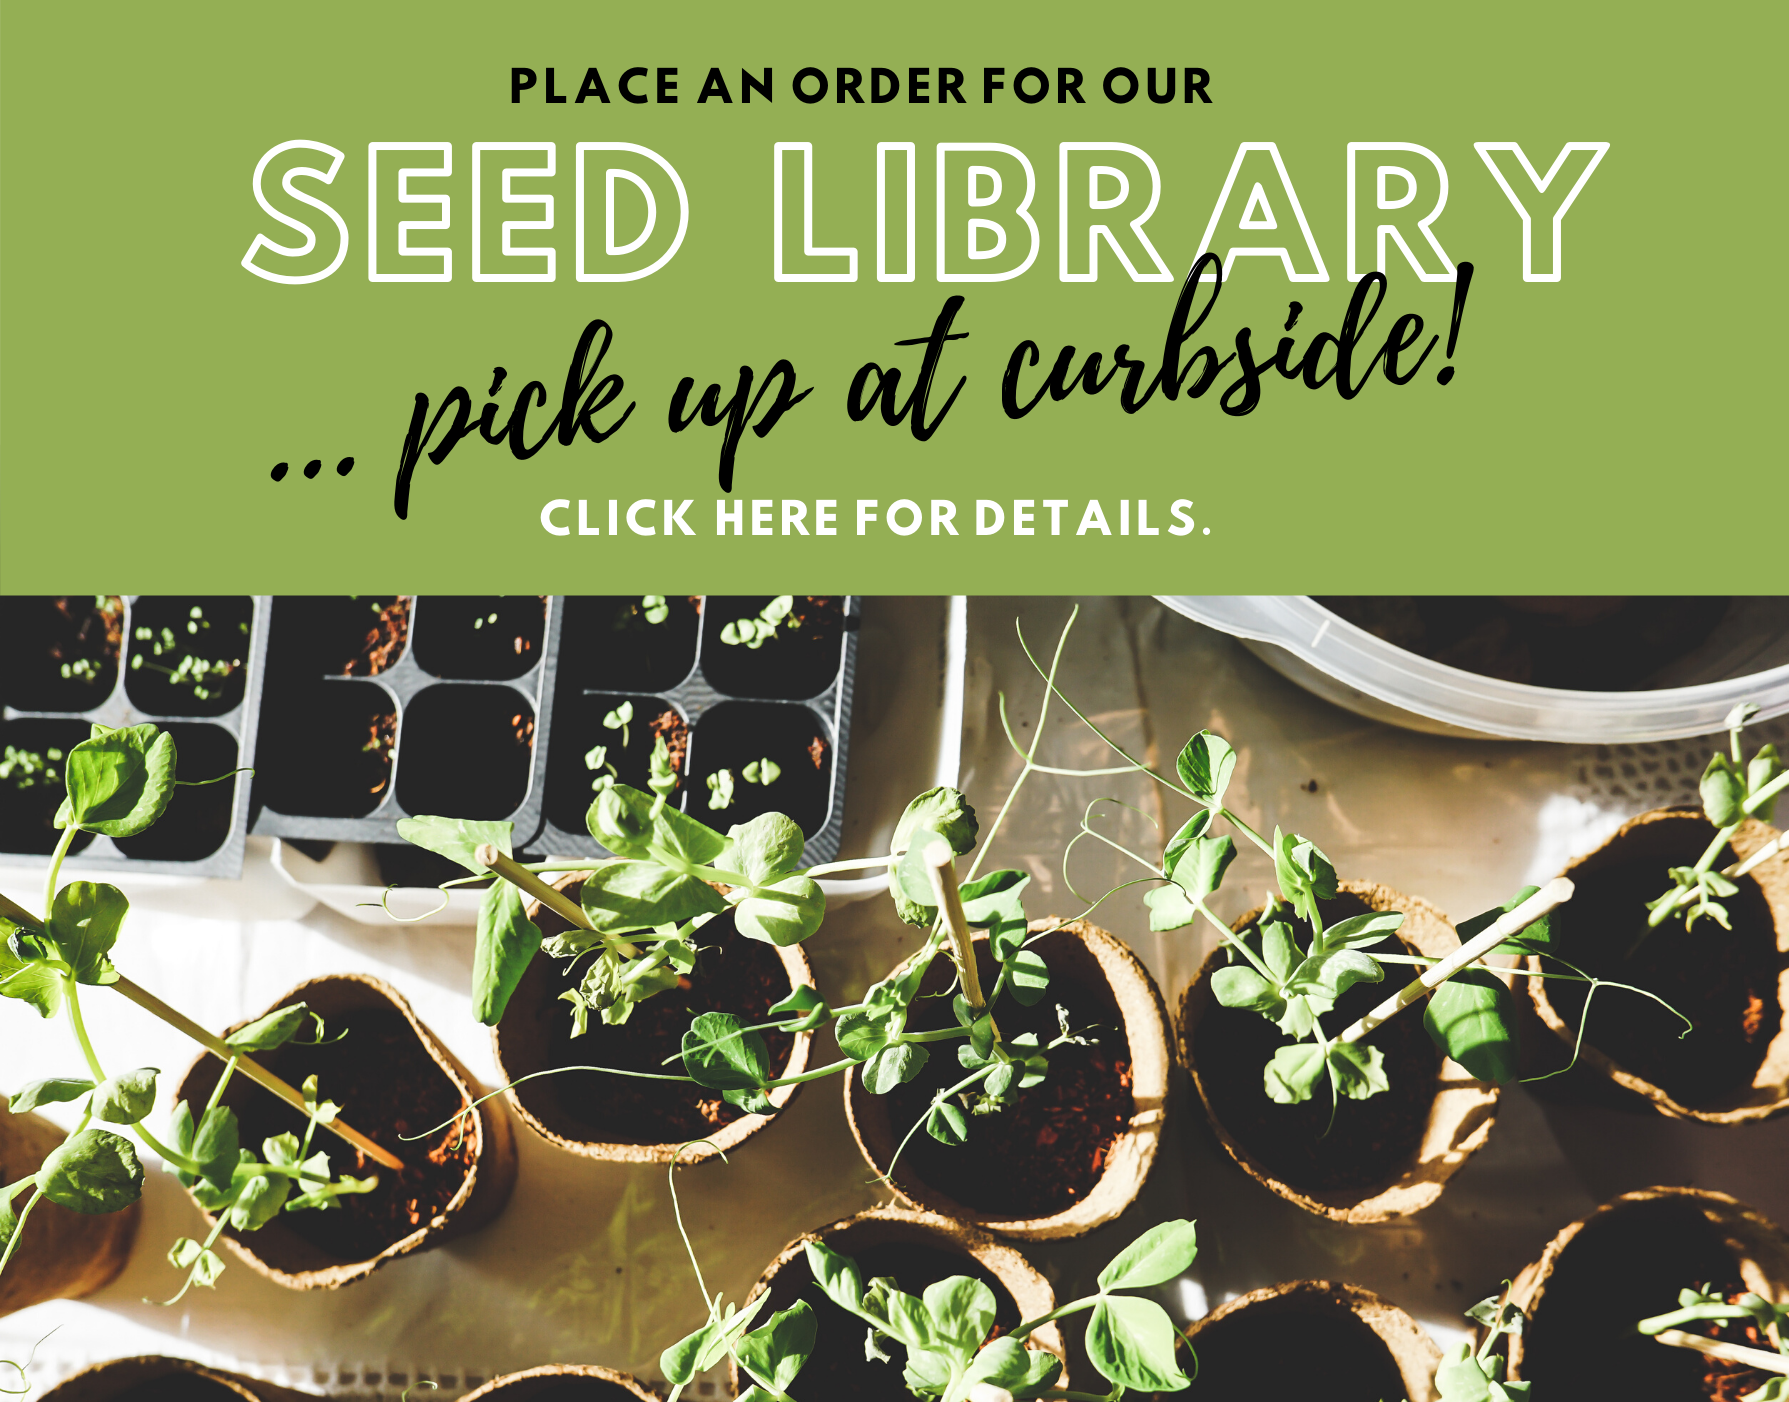 Pick up Seeds at the Library